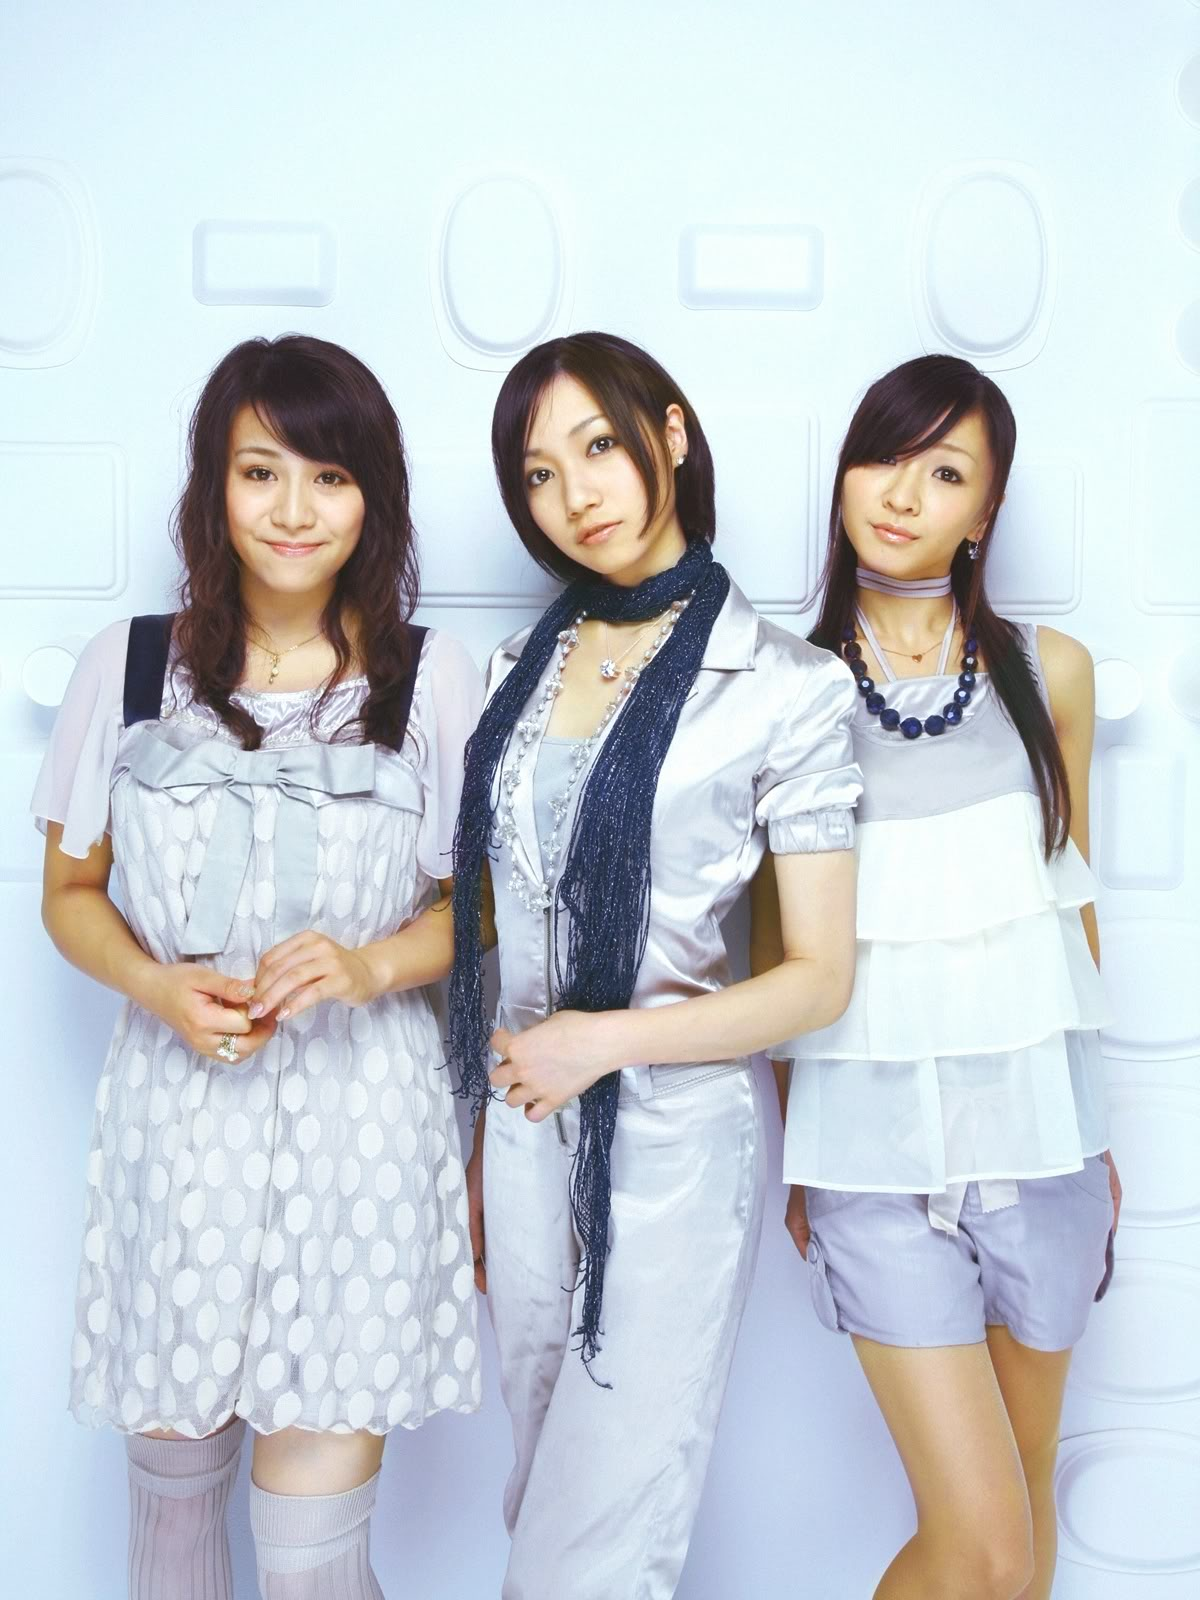 Perfume (Group) Android/iPhone Wallpaper #2244 - Asiachan ...